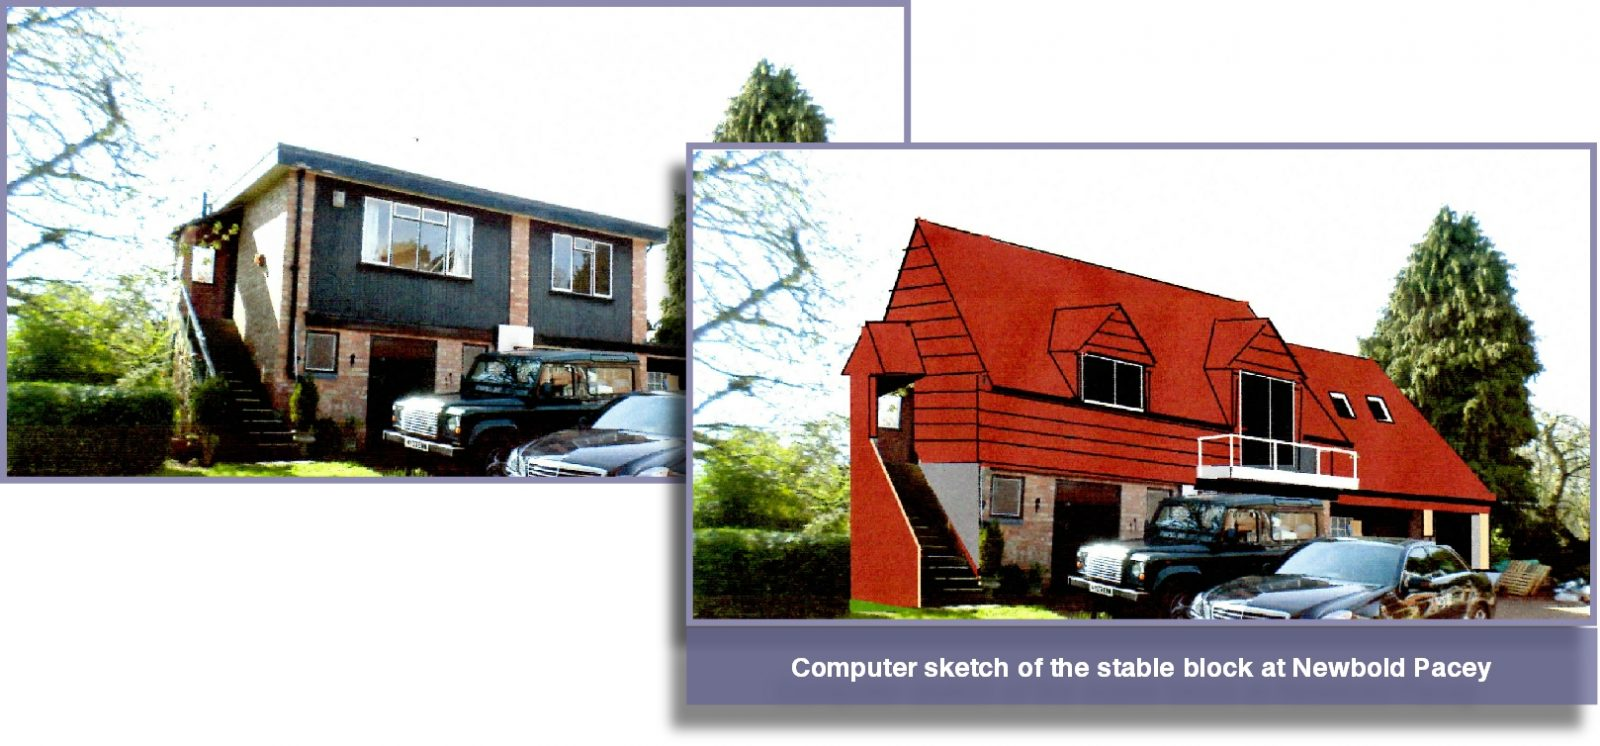 newbold-pacey-stables-before-and-after-image-4-colin-k-dale